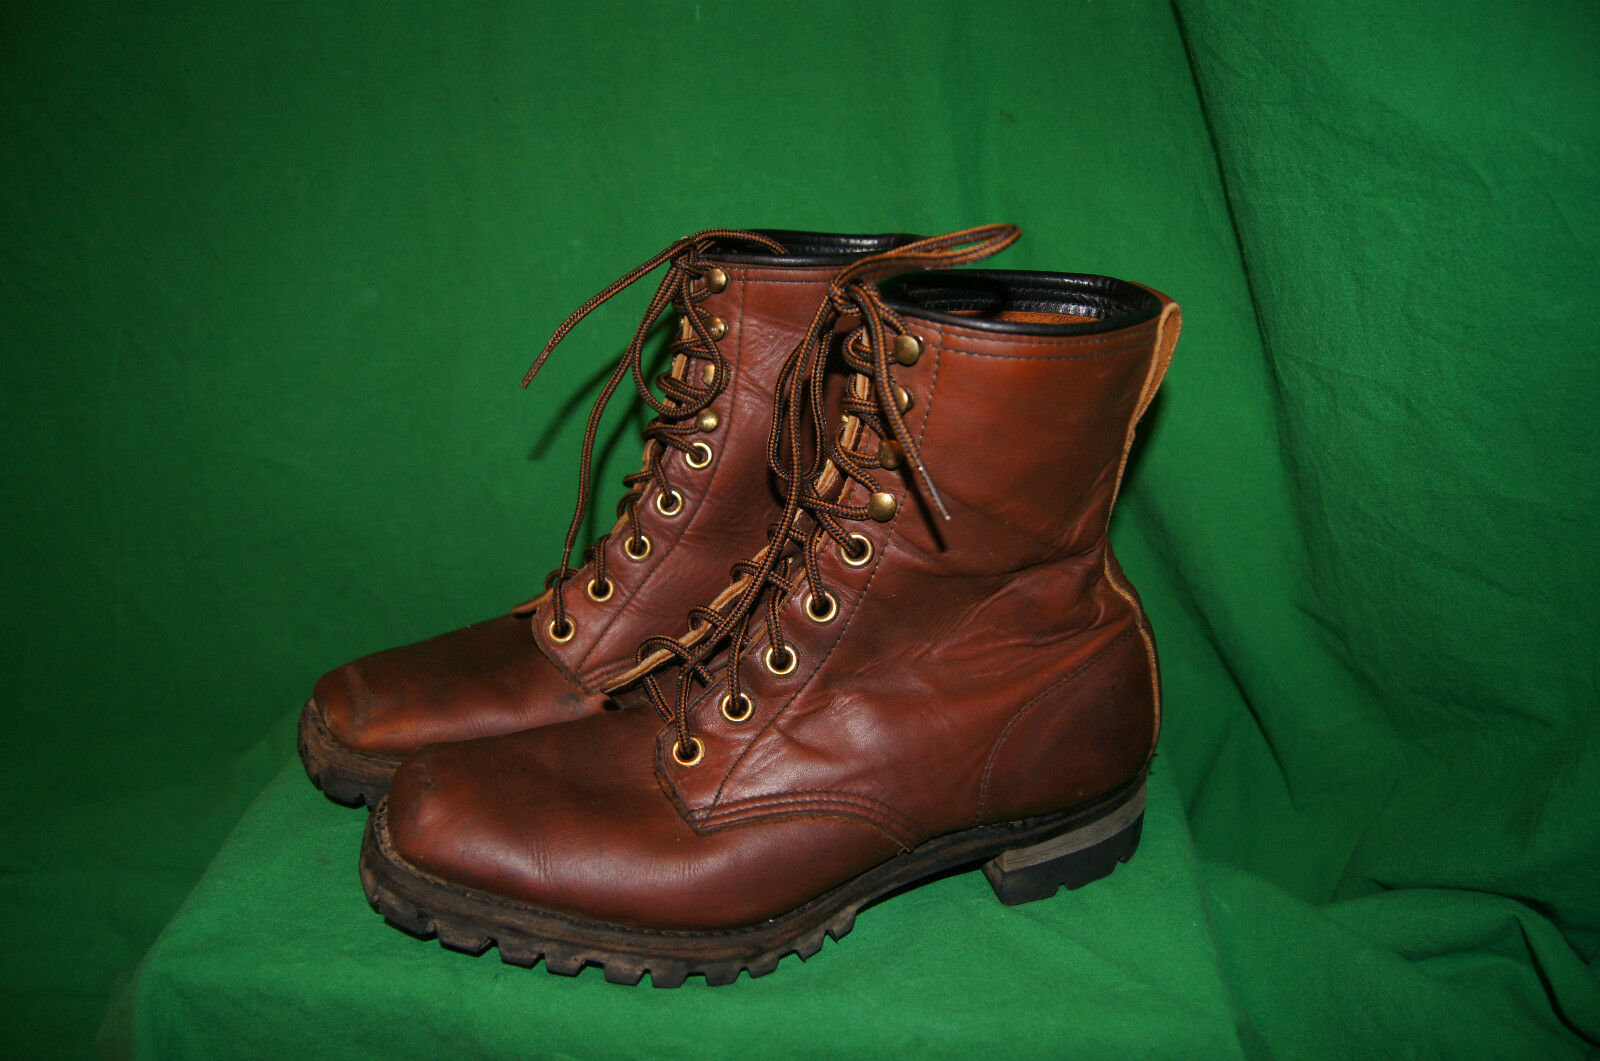 Vintage BOOTS 10 Pelle Motorcycle BOOTS 10 SQUARE TOE BOOTS 10 VINTAGE HUNTING